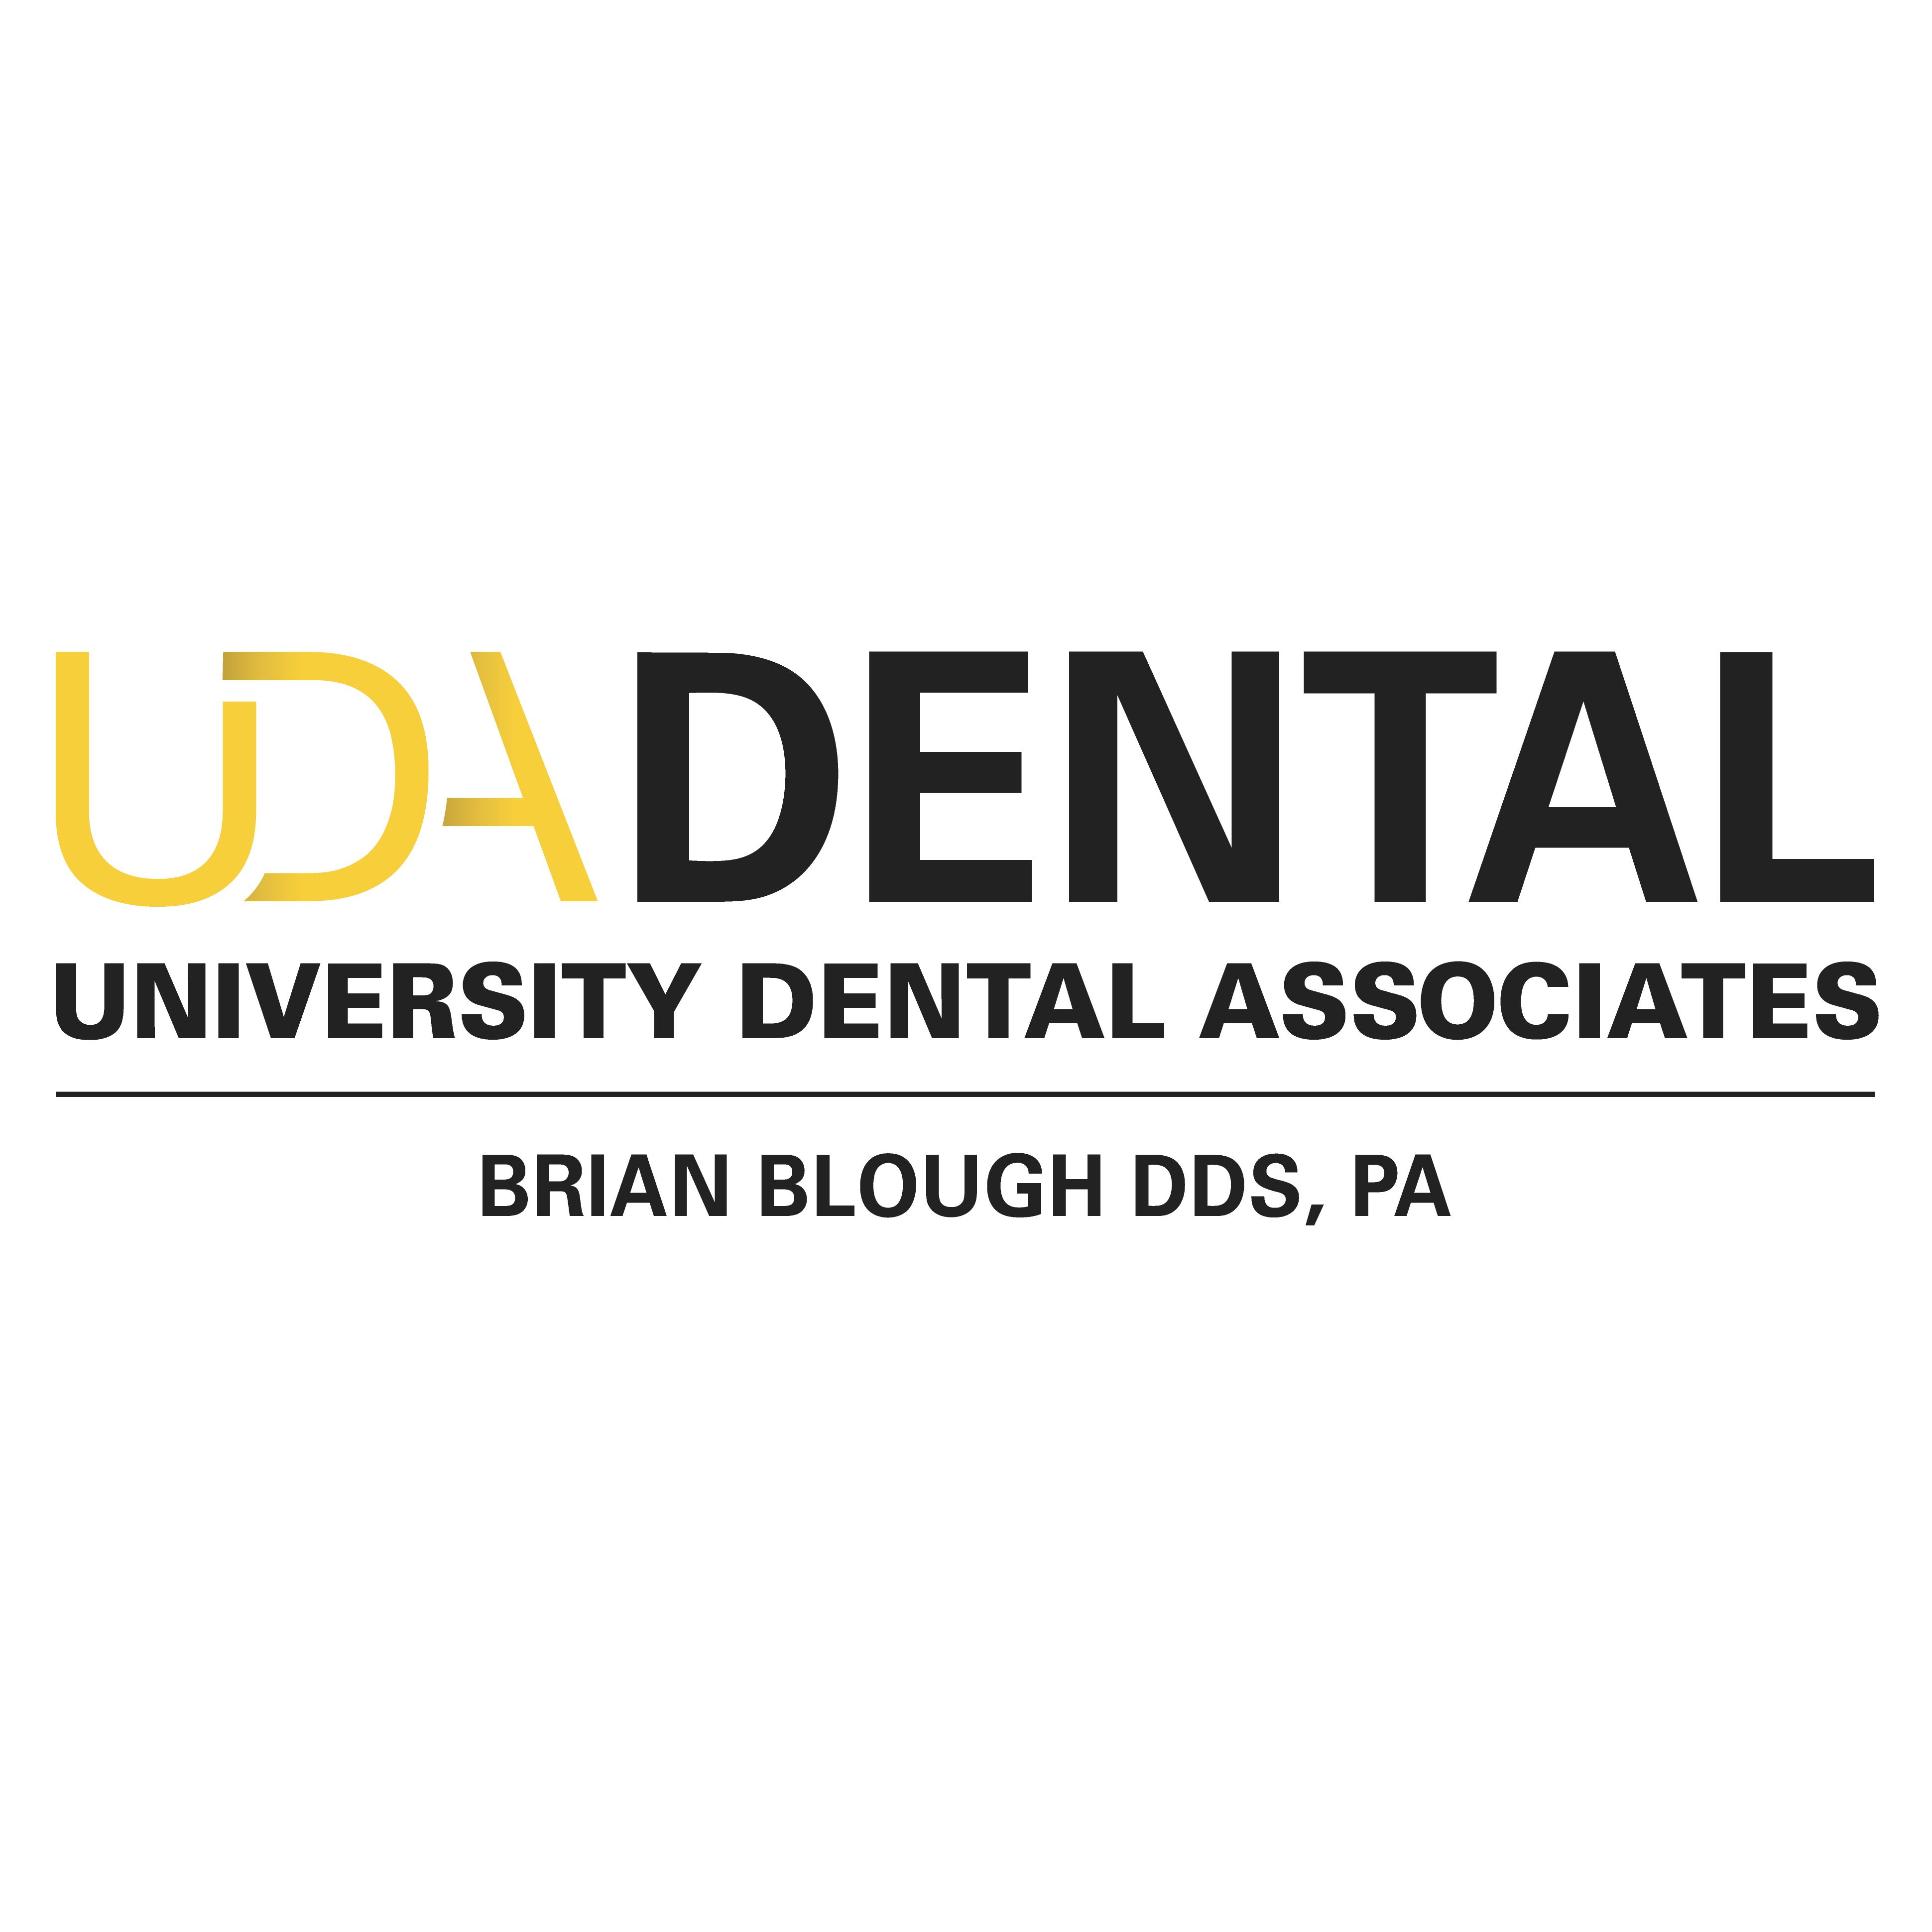 University Dental Associates Durham - Durham, NC - Dentists & Dental Services